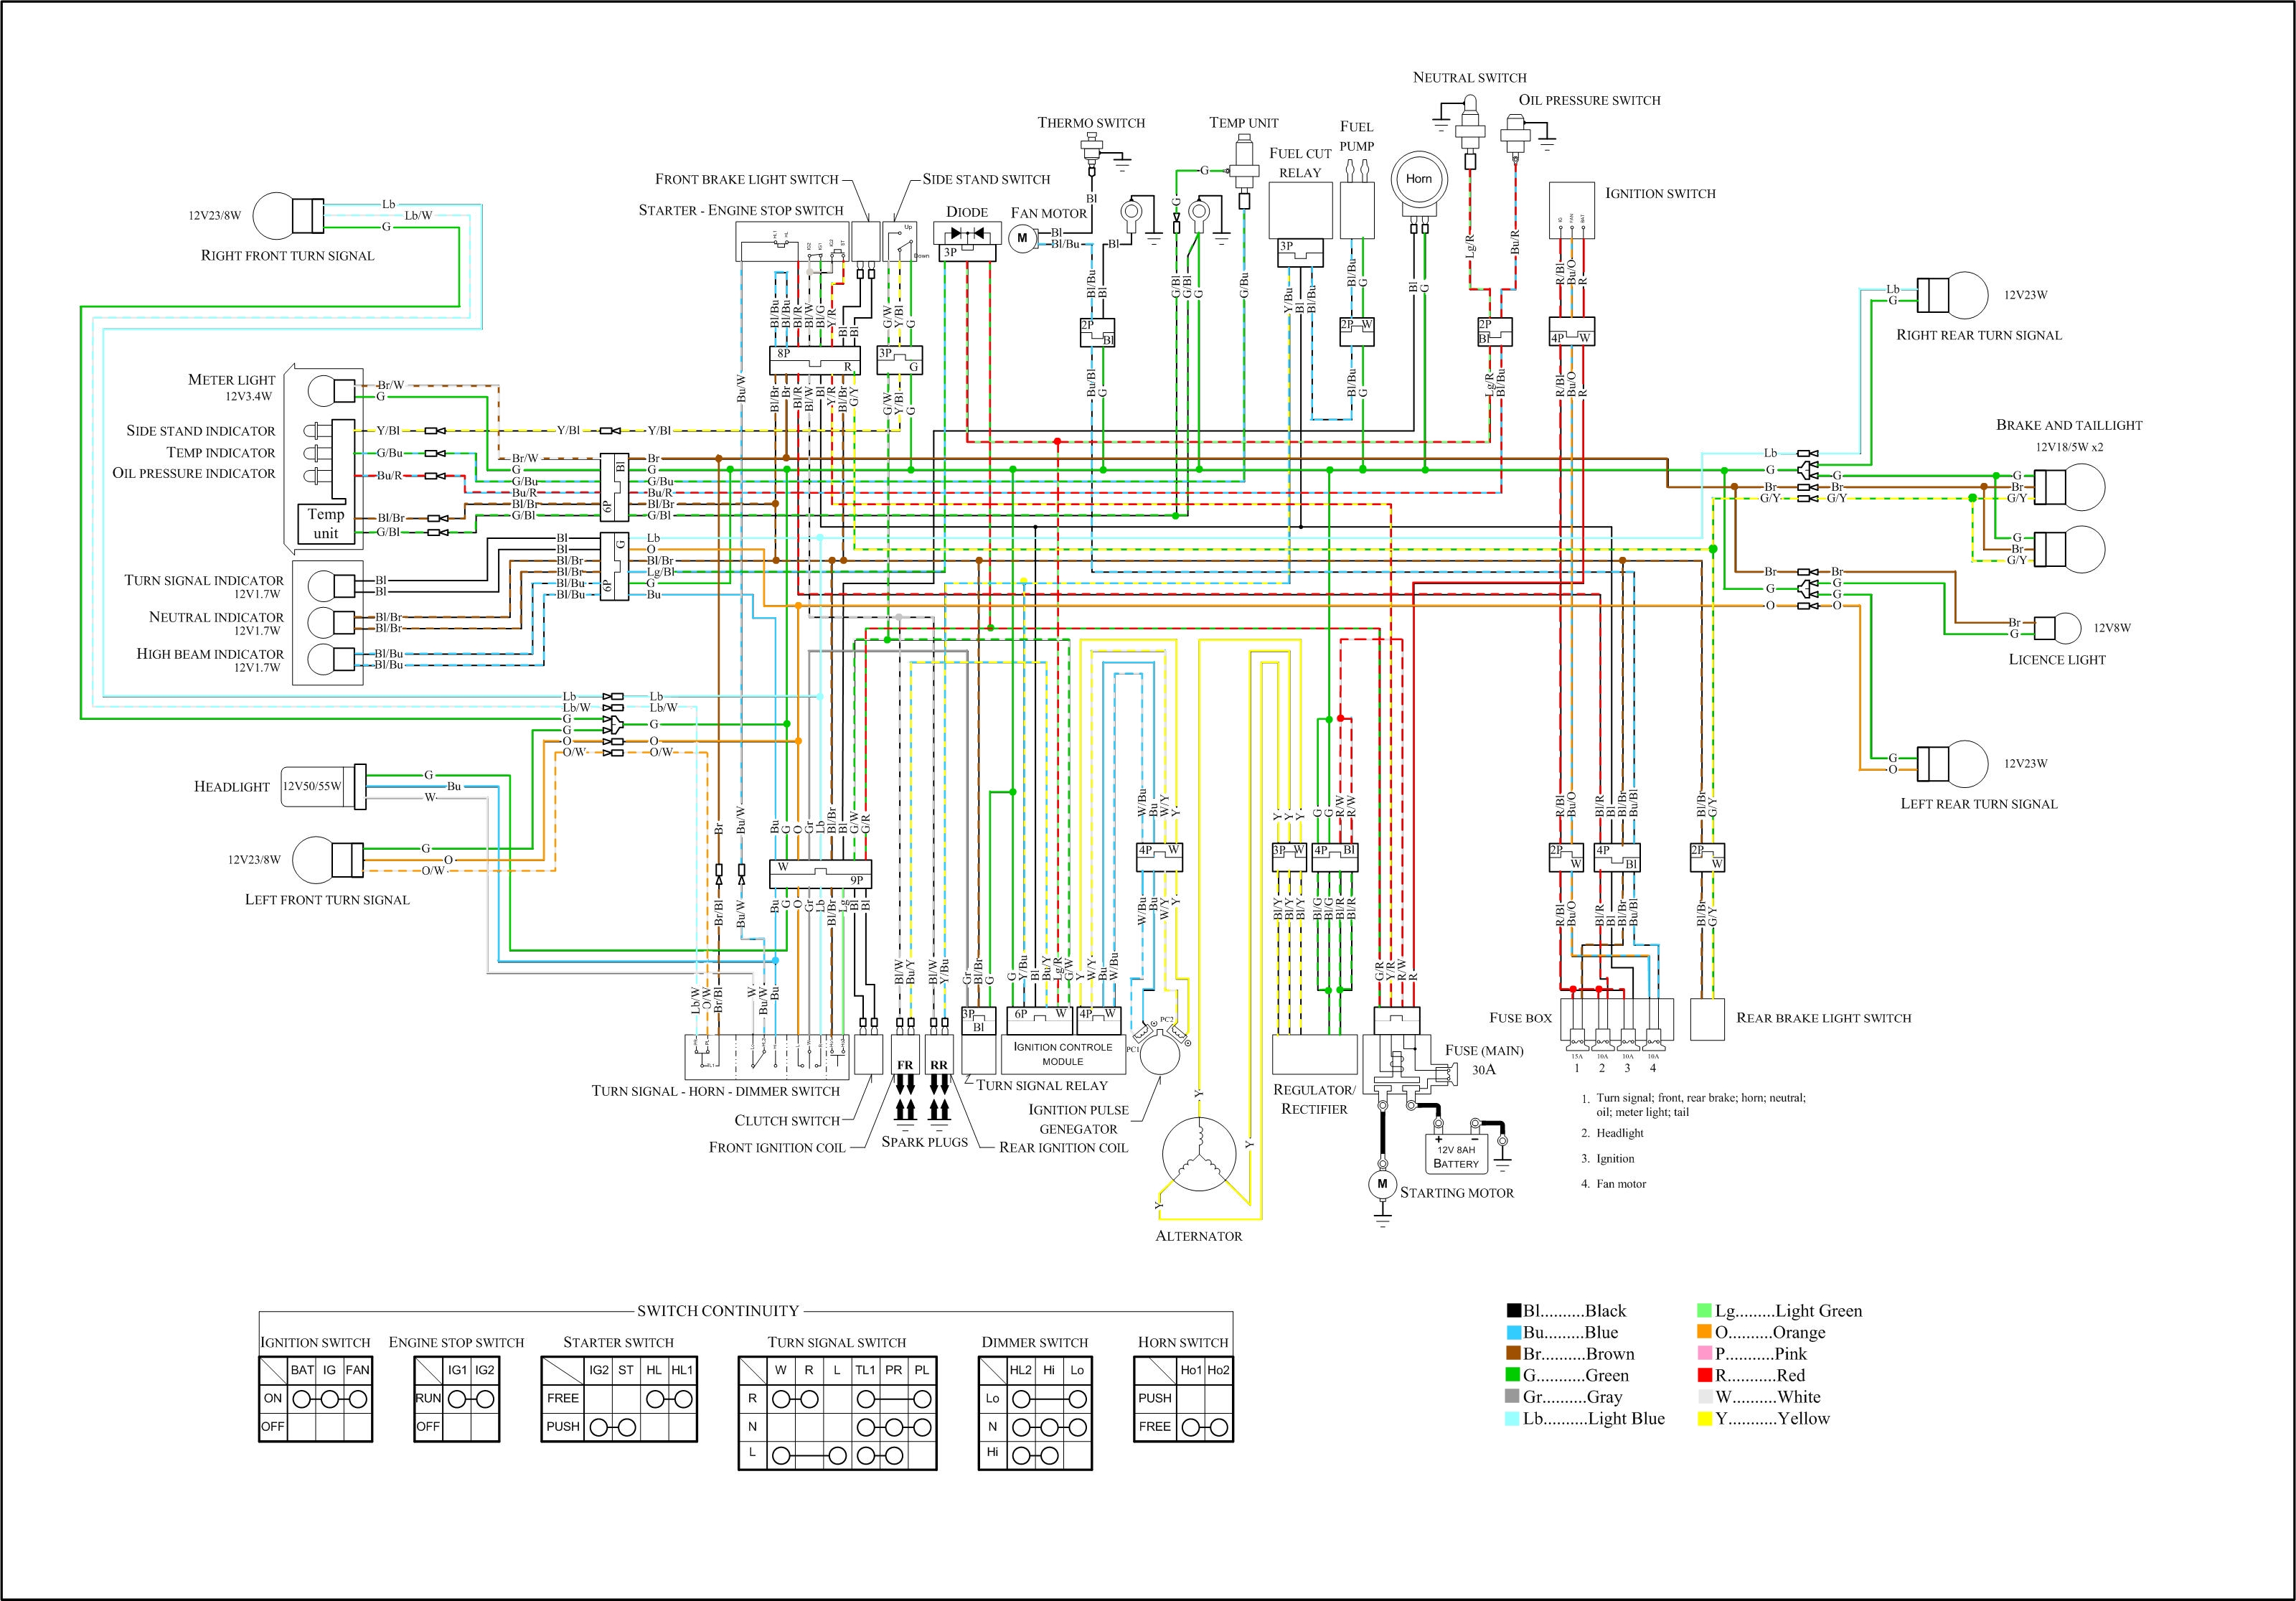 VT600wiring motorcycle wiring diagrams 1999 honda shadow 1100 wiring diagram at edmiracle.co